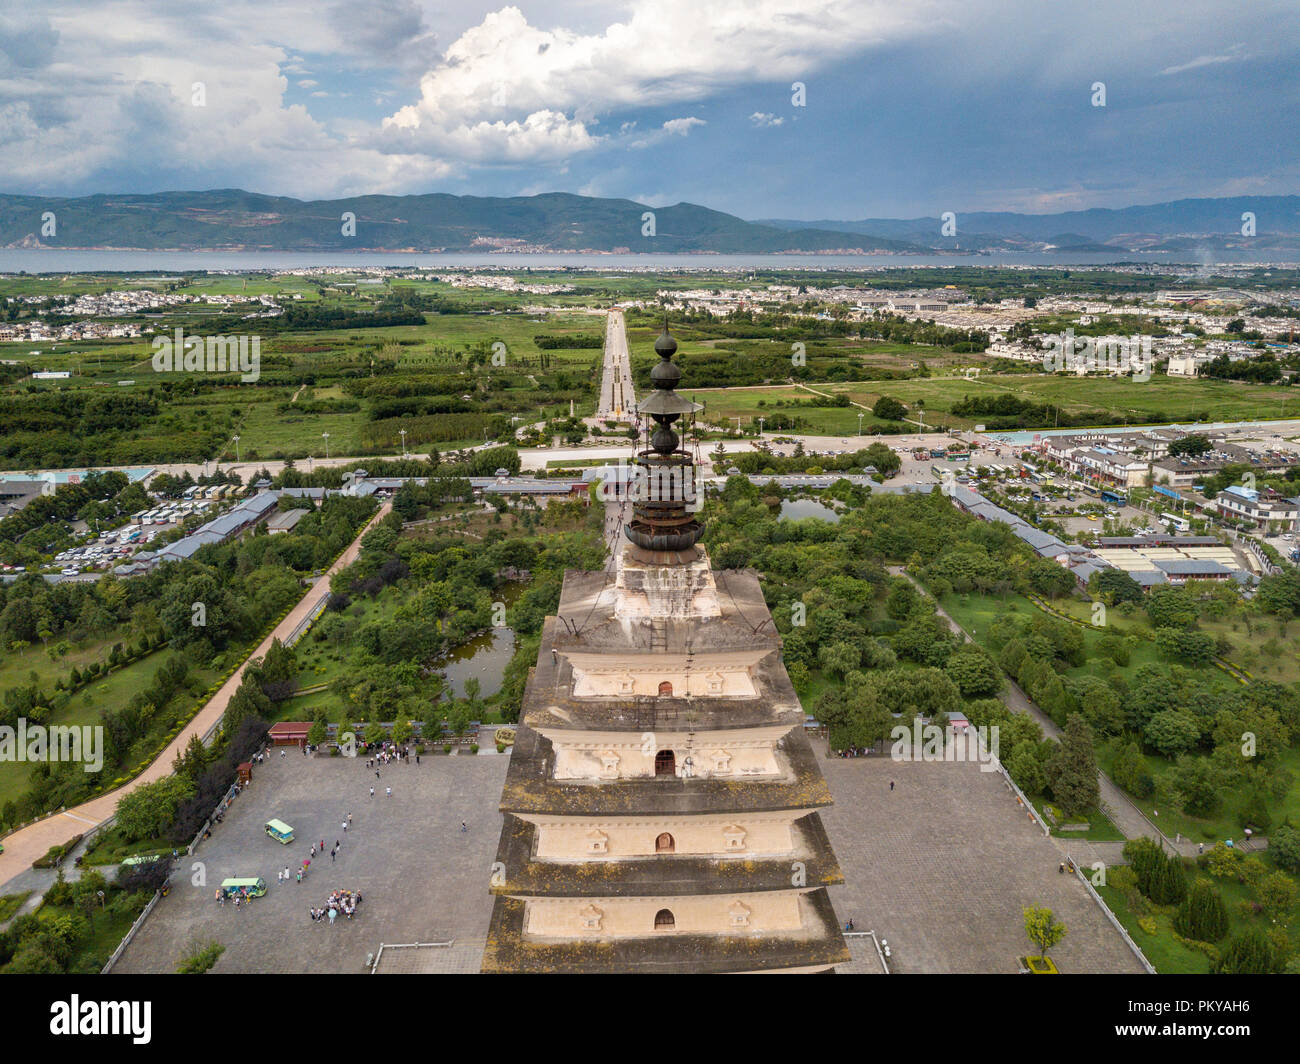 The Three Pagodas of Chongsheng Temple is a symbol of Dali's 'Literary State of Literature'. One of the ancient and majestic buildings in south China. - Stock Image